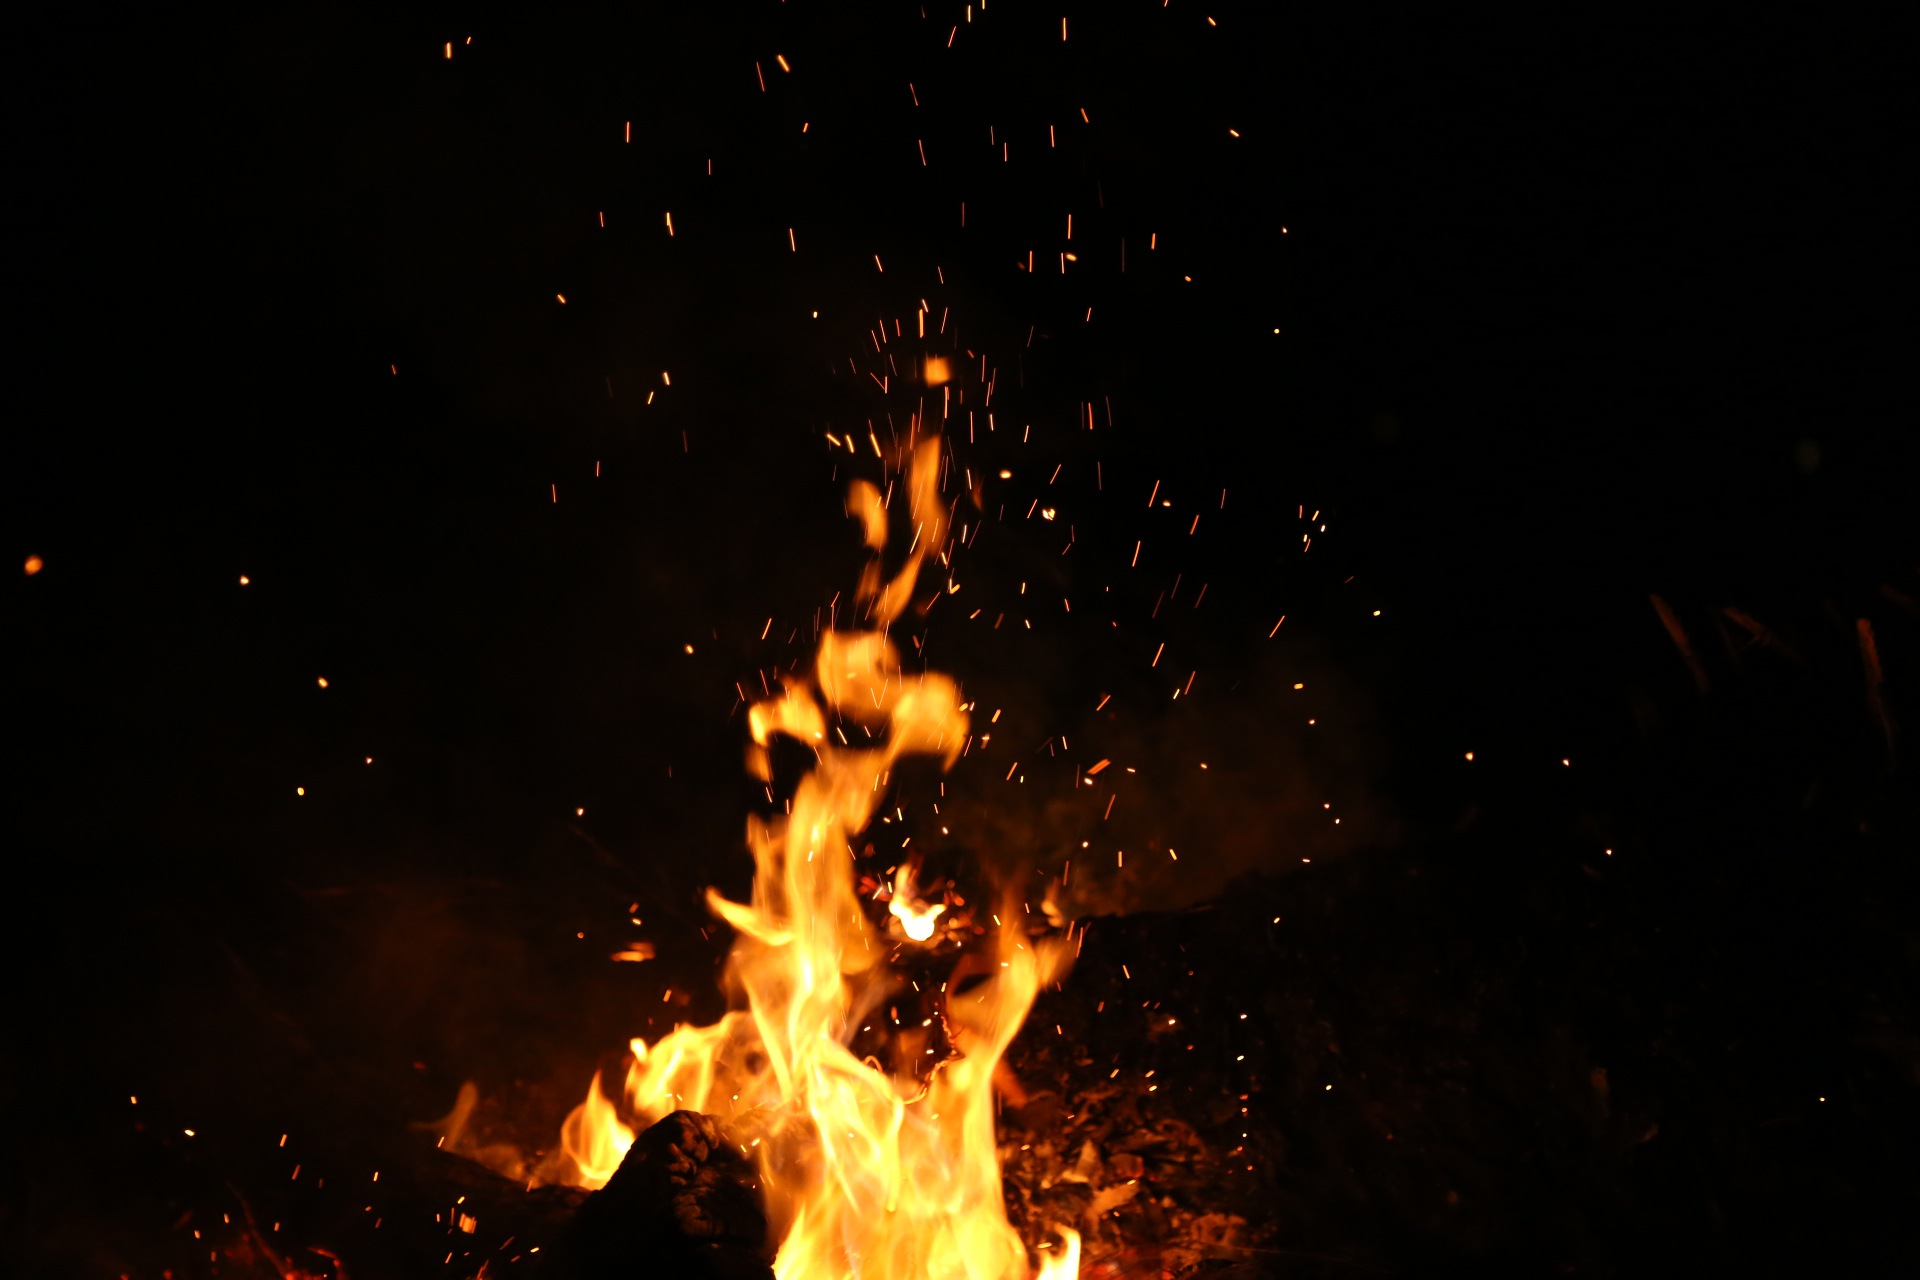 Night fire burning sparks